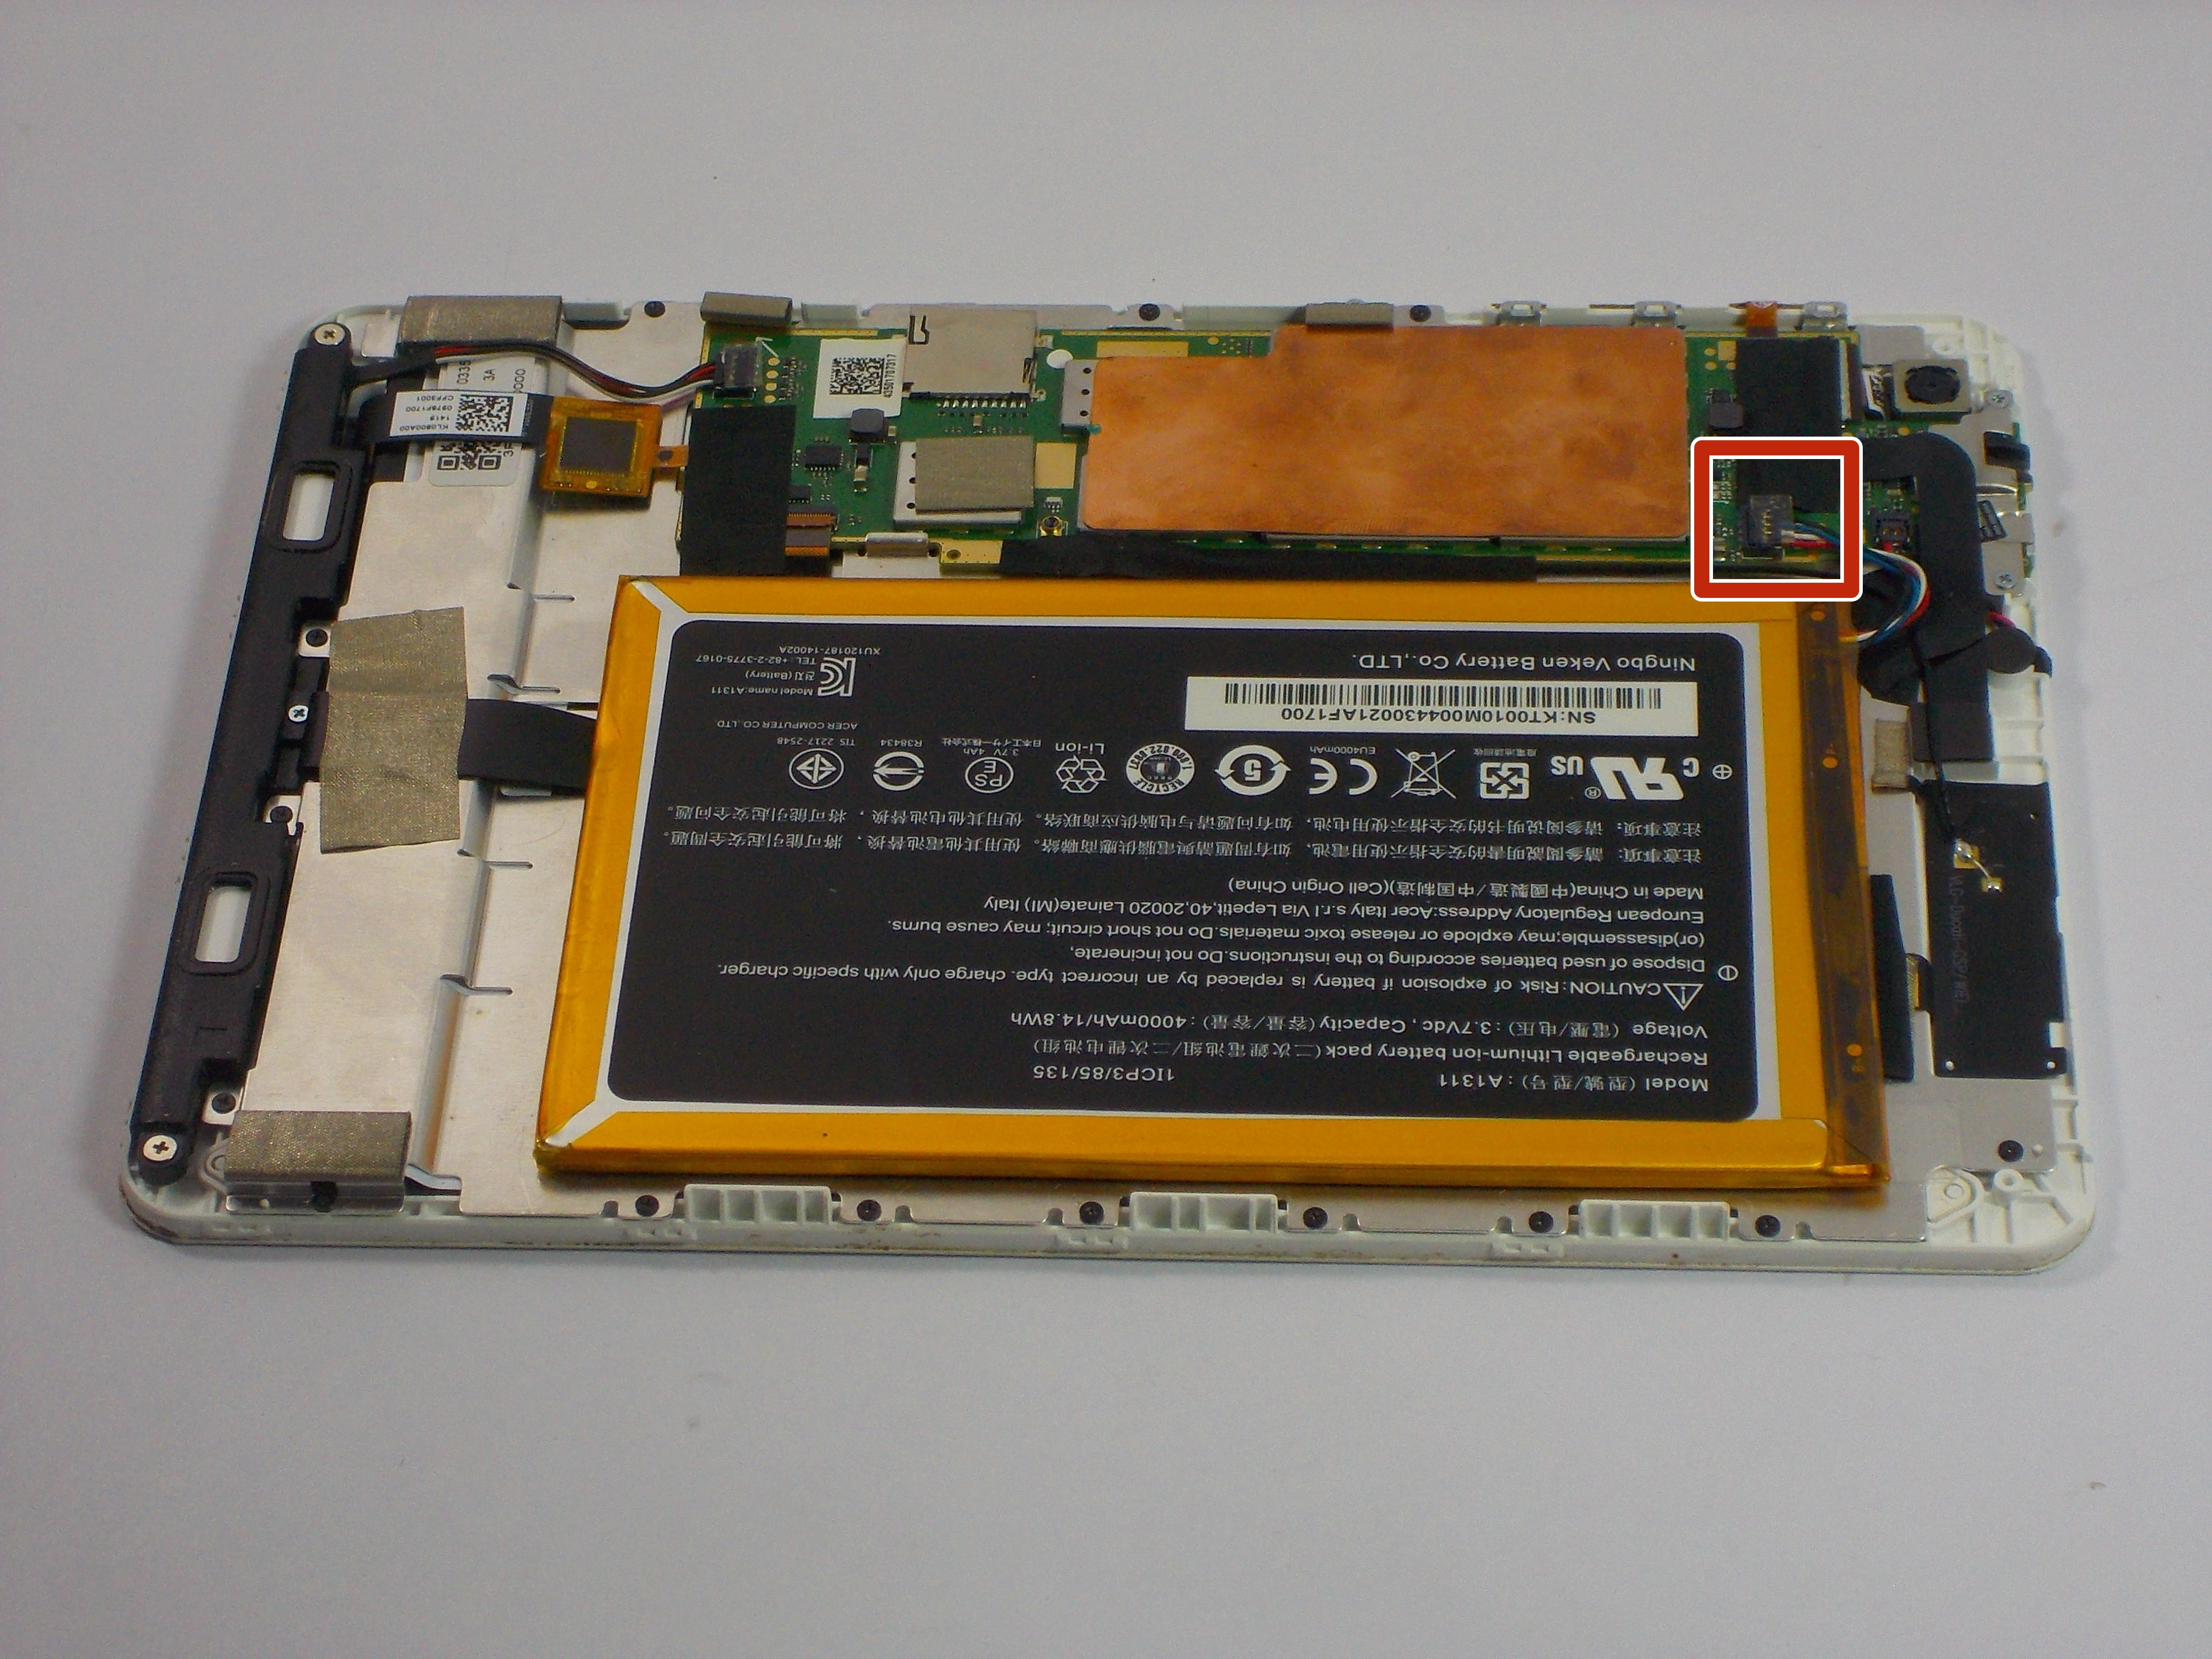 Acer Iconia A1 830 Battery Replacement Ifixit Repair Guide Front Panel Wiring Issue Solved Components